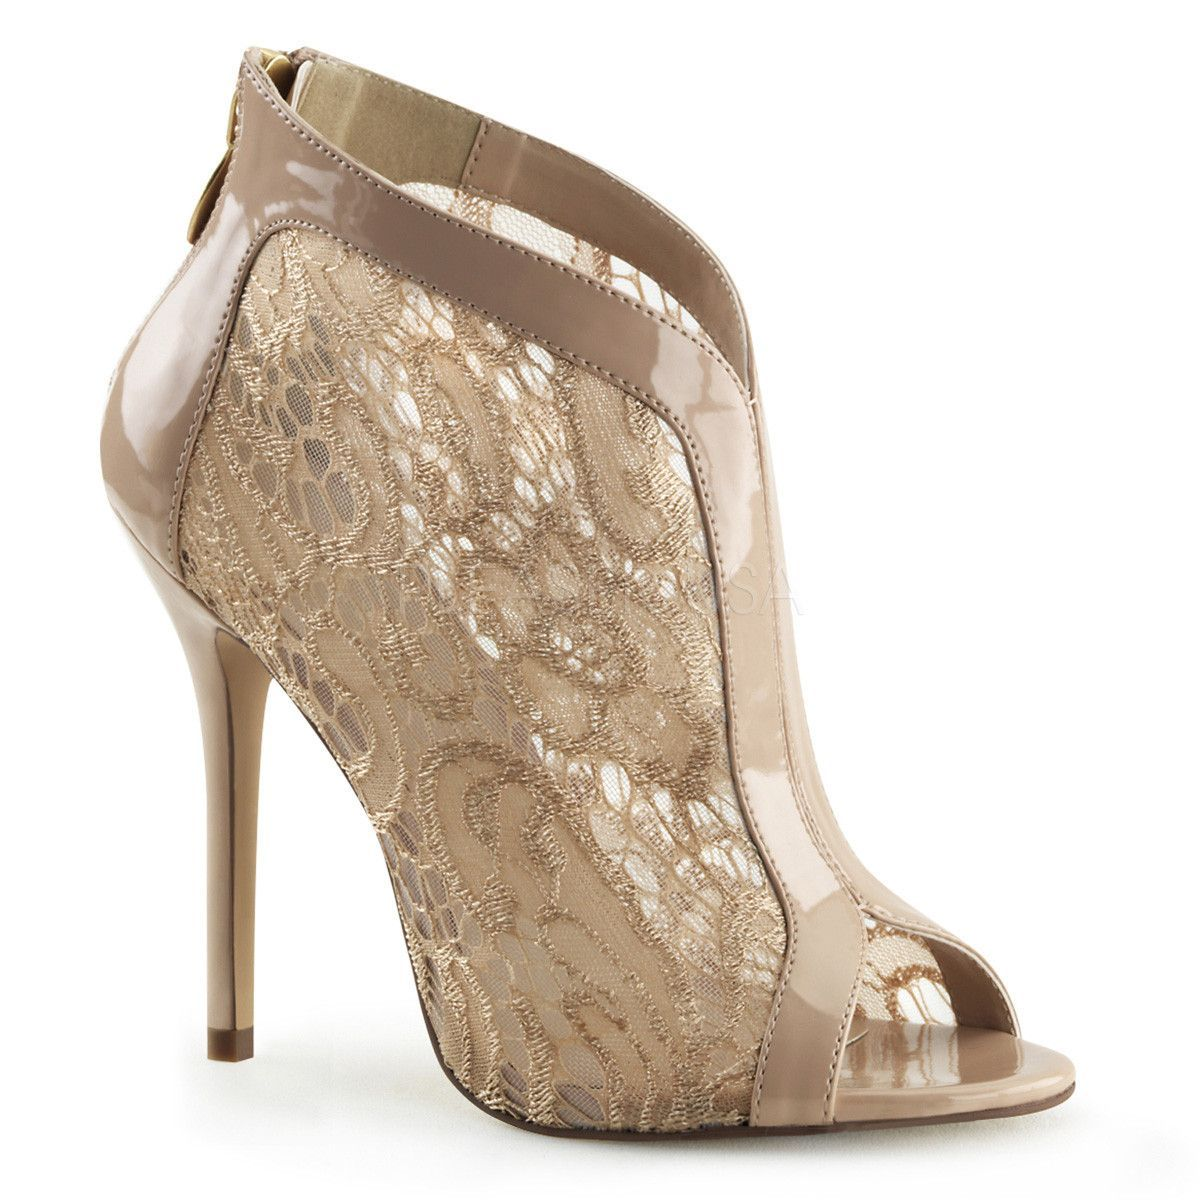 Nude Fabulicious High Heel Pumps w/ Lace Overlay